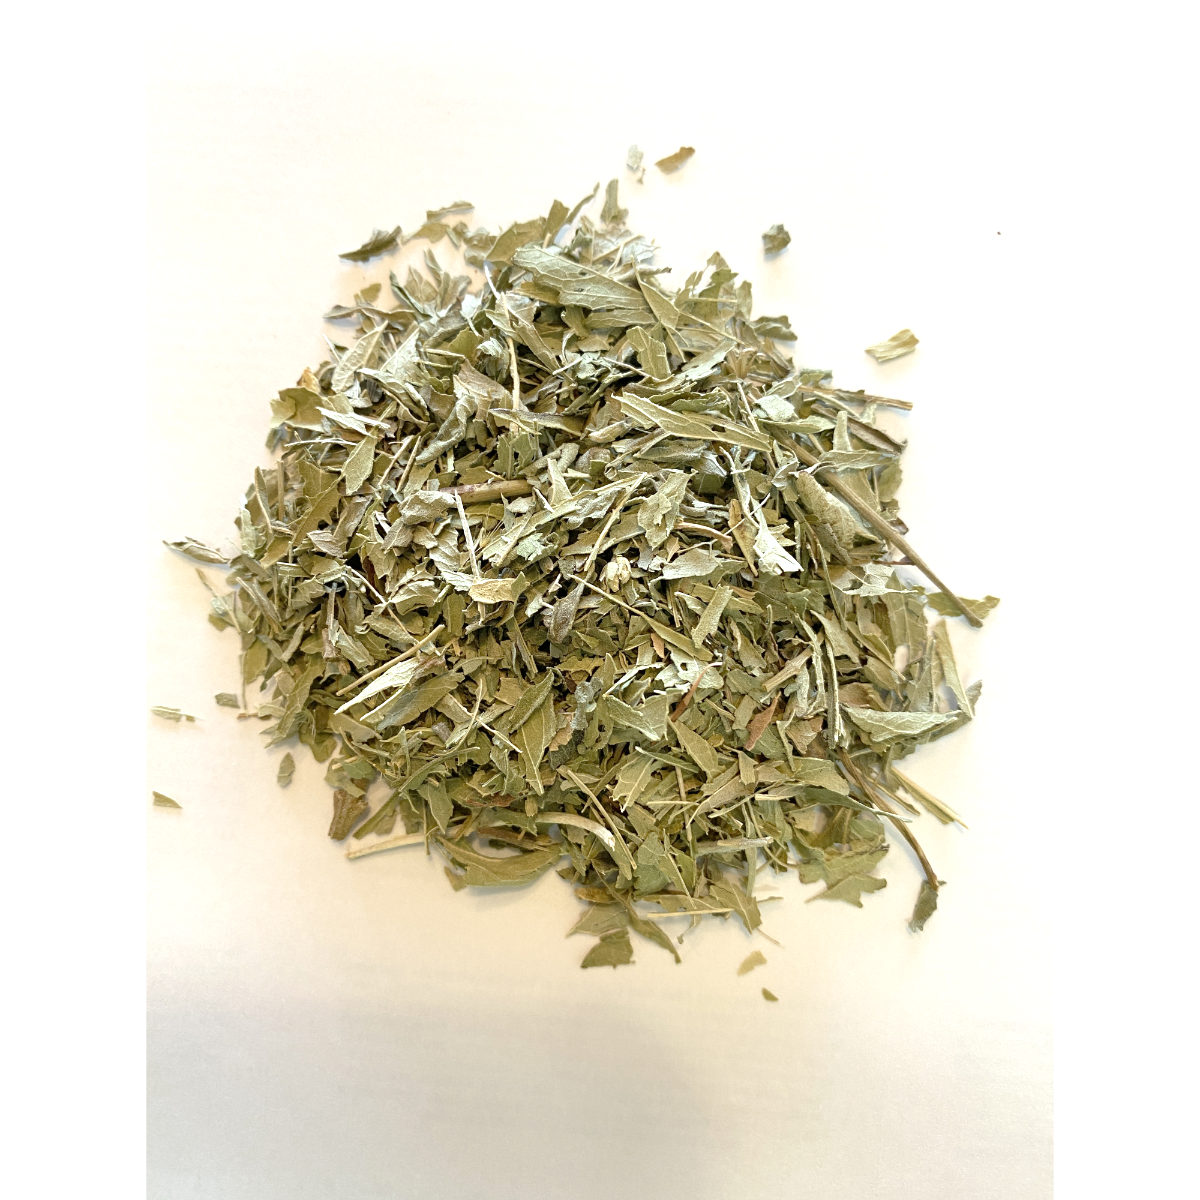 SteviaLeaf from South America. Indigenous people used leaves of the plant to sweeten beverages or chewed them for their sweet taste.